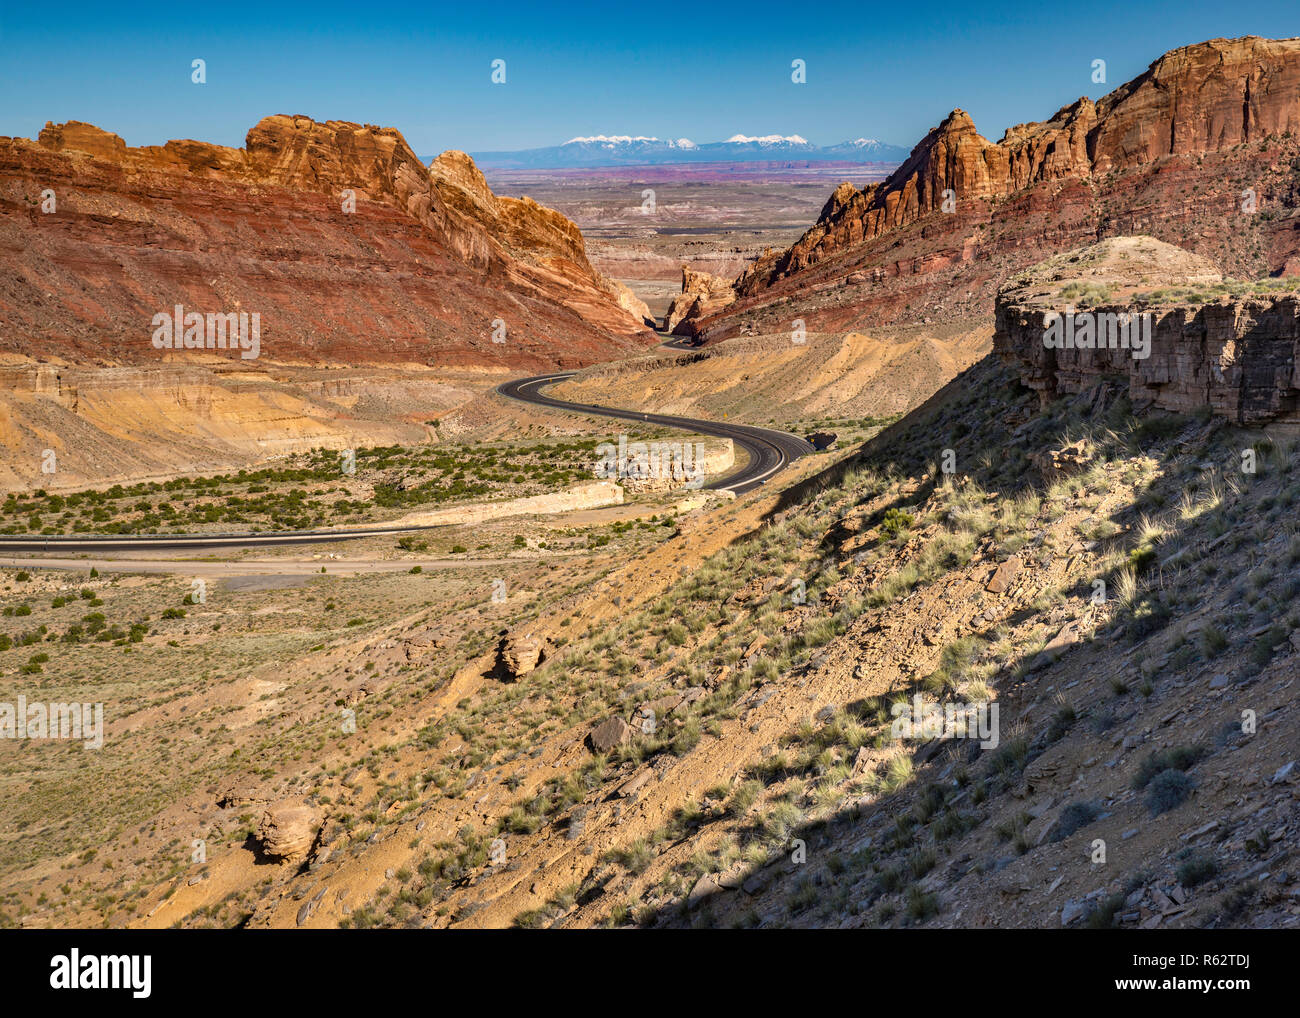 I-70 Interstate Freeway in Spotted Wolf Canyon, attraversando San Rafael Reef scogliere, San Rafael Swell area Altopiano del Colorado, Utah, Stati Uniti d'America Immagini Stock